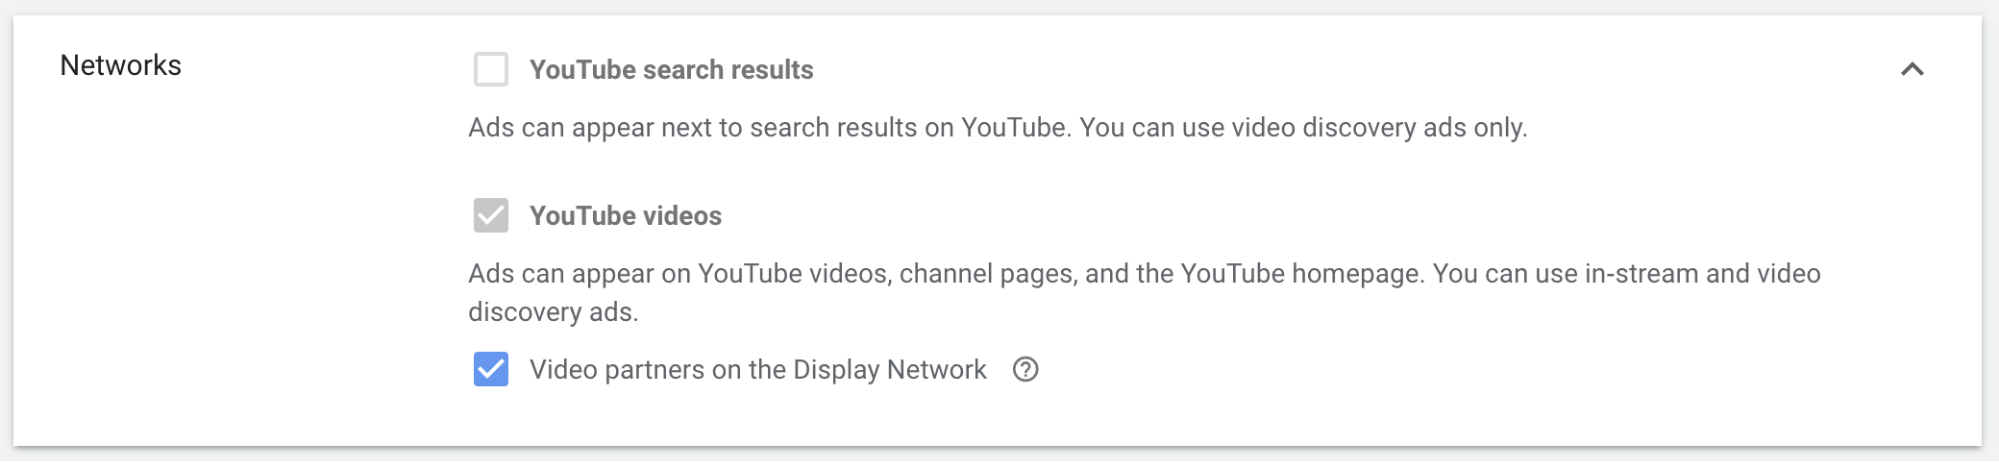 YouTube video ads — Networks checkbox for non-skippable ads